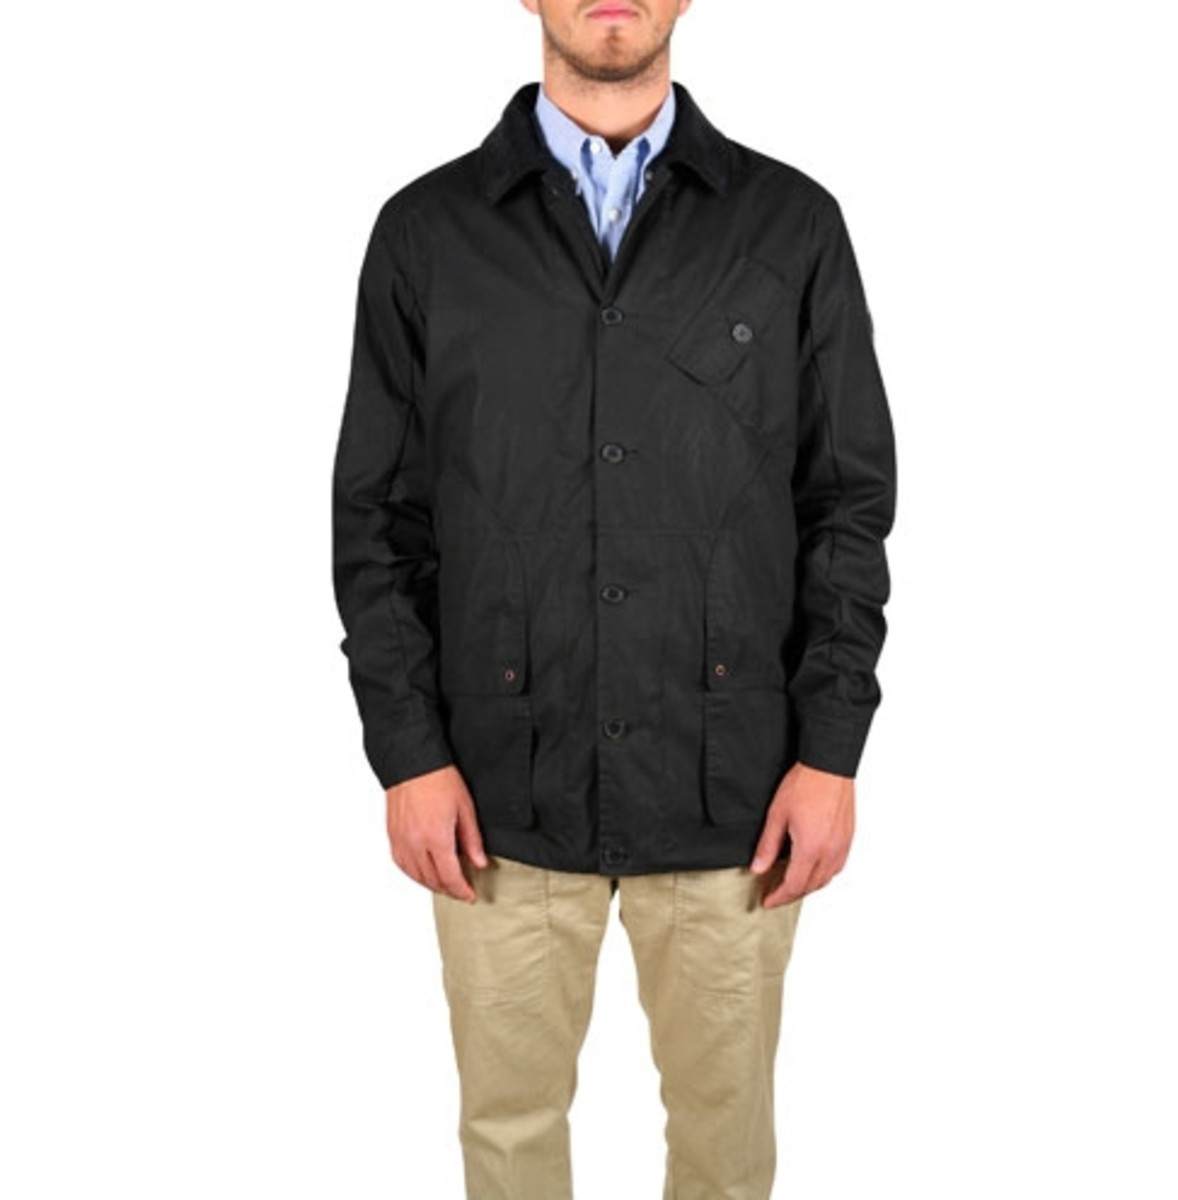 Penfield SS2011 Jackets 5